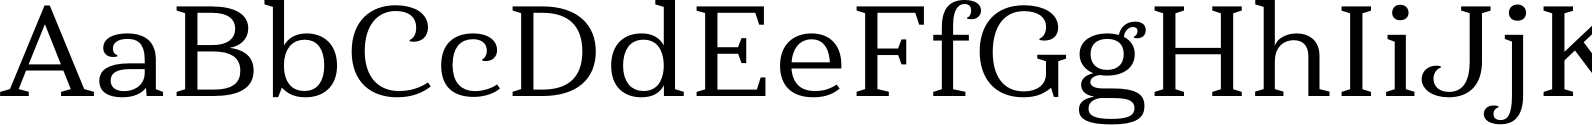 Haboro Serif Ext Medium Font